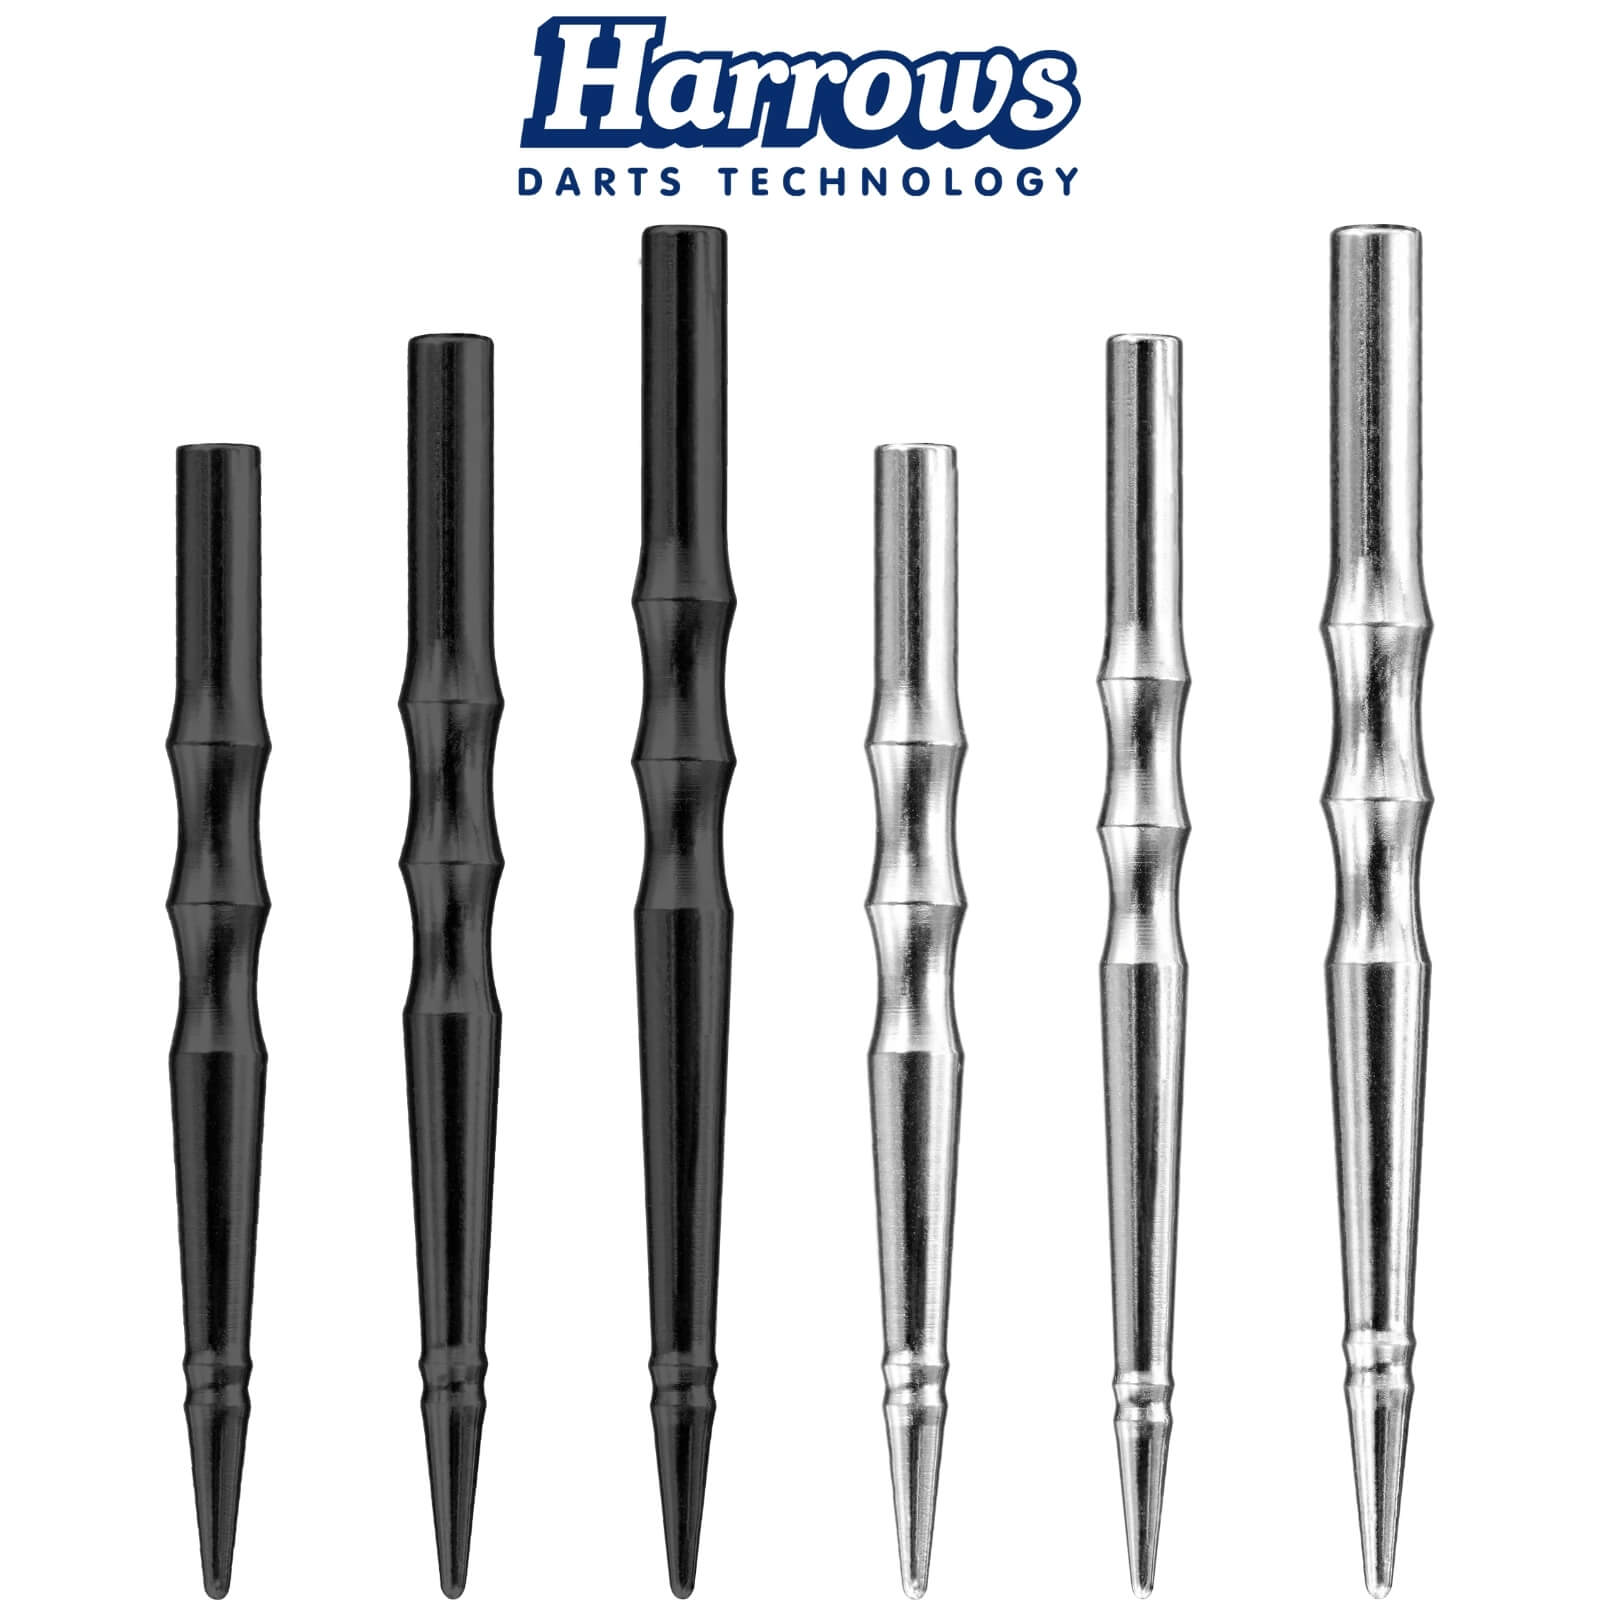 Point Accessories - Harrows - Sabre Machined Dart Points - 32mm 35mm 38mm